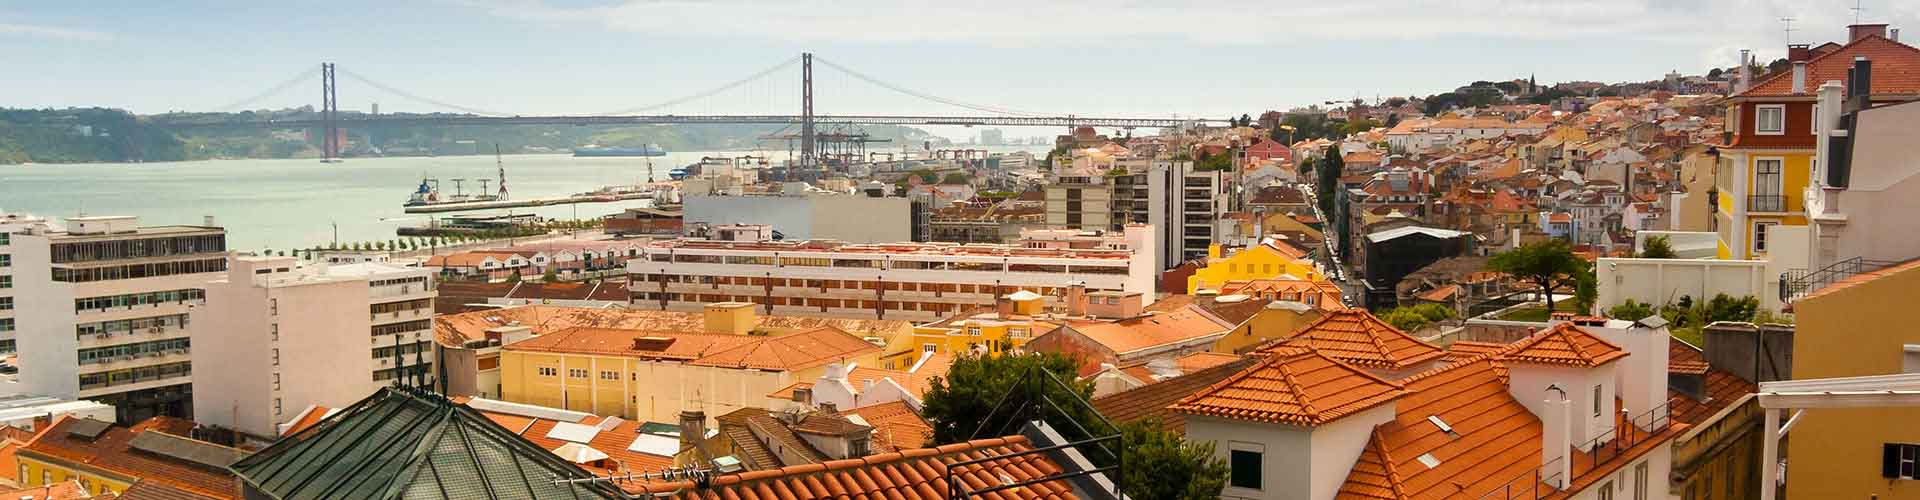 Lisbon – Camping in Bairro Alto. Maps of Lisbon, Photos and Reviews for each camping in Lisbon.